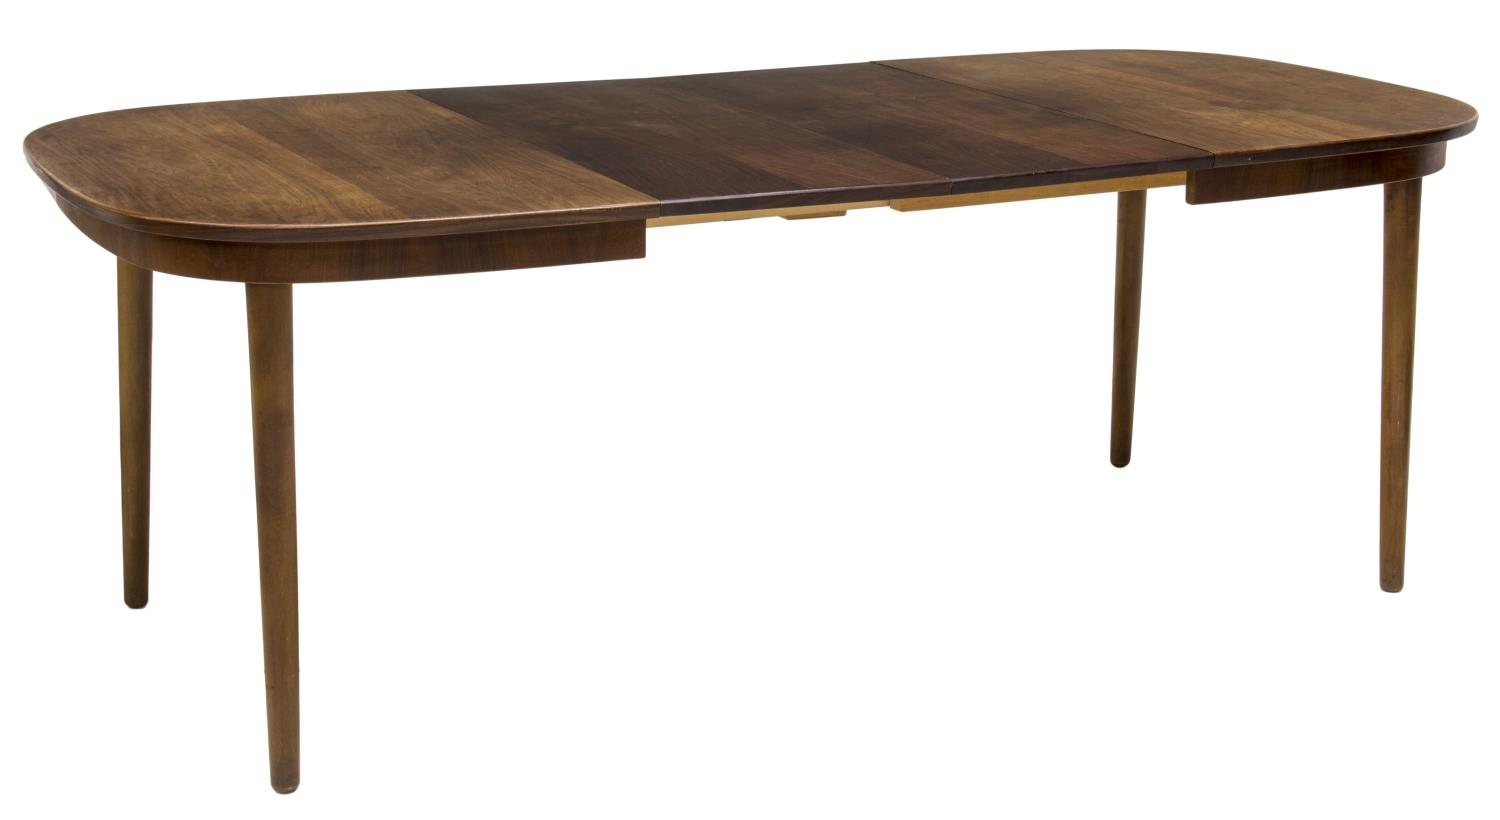 DANISH MID CENTURY MODERN ROSEWOOD DINING TABLE Holiday  : 231 from www.austinauction.com size 1500 x 820 jpeg 51kB